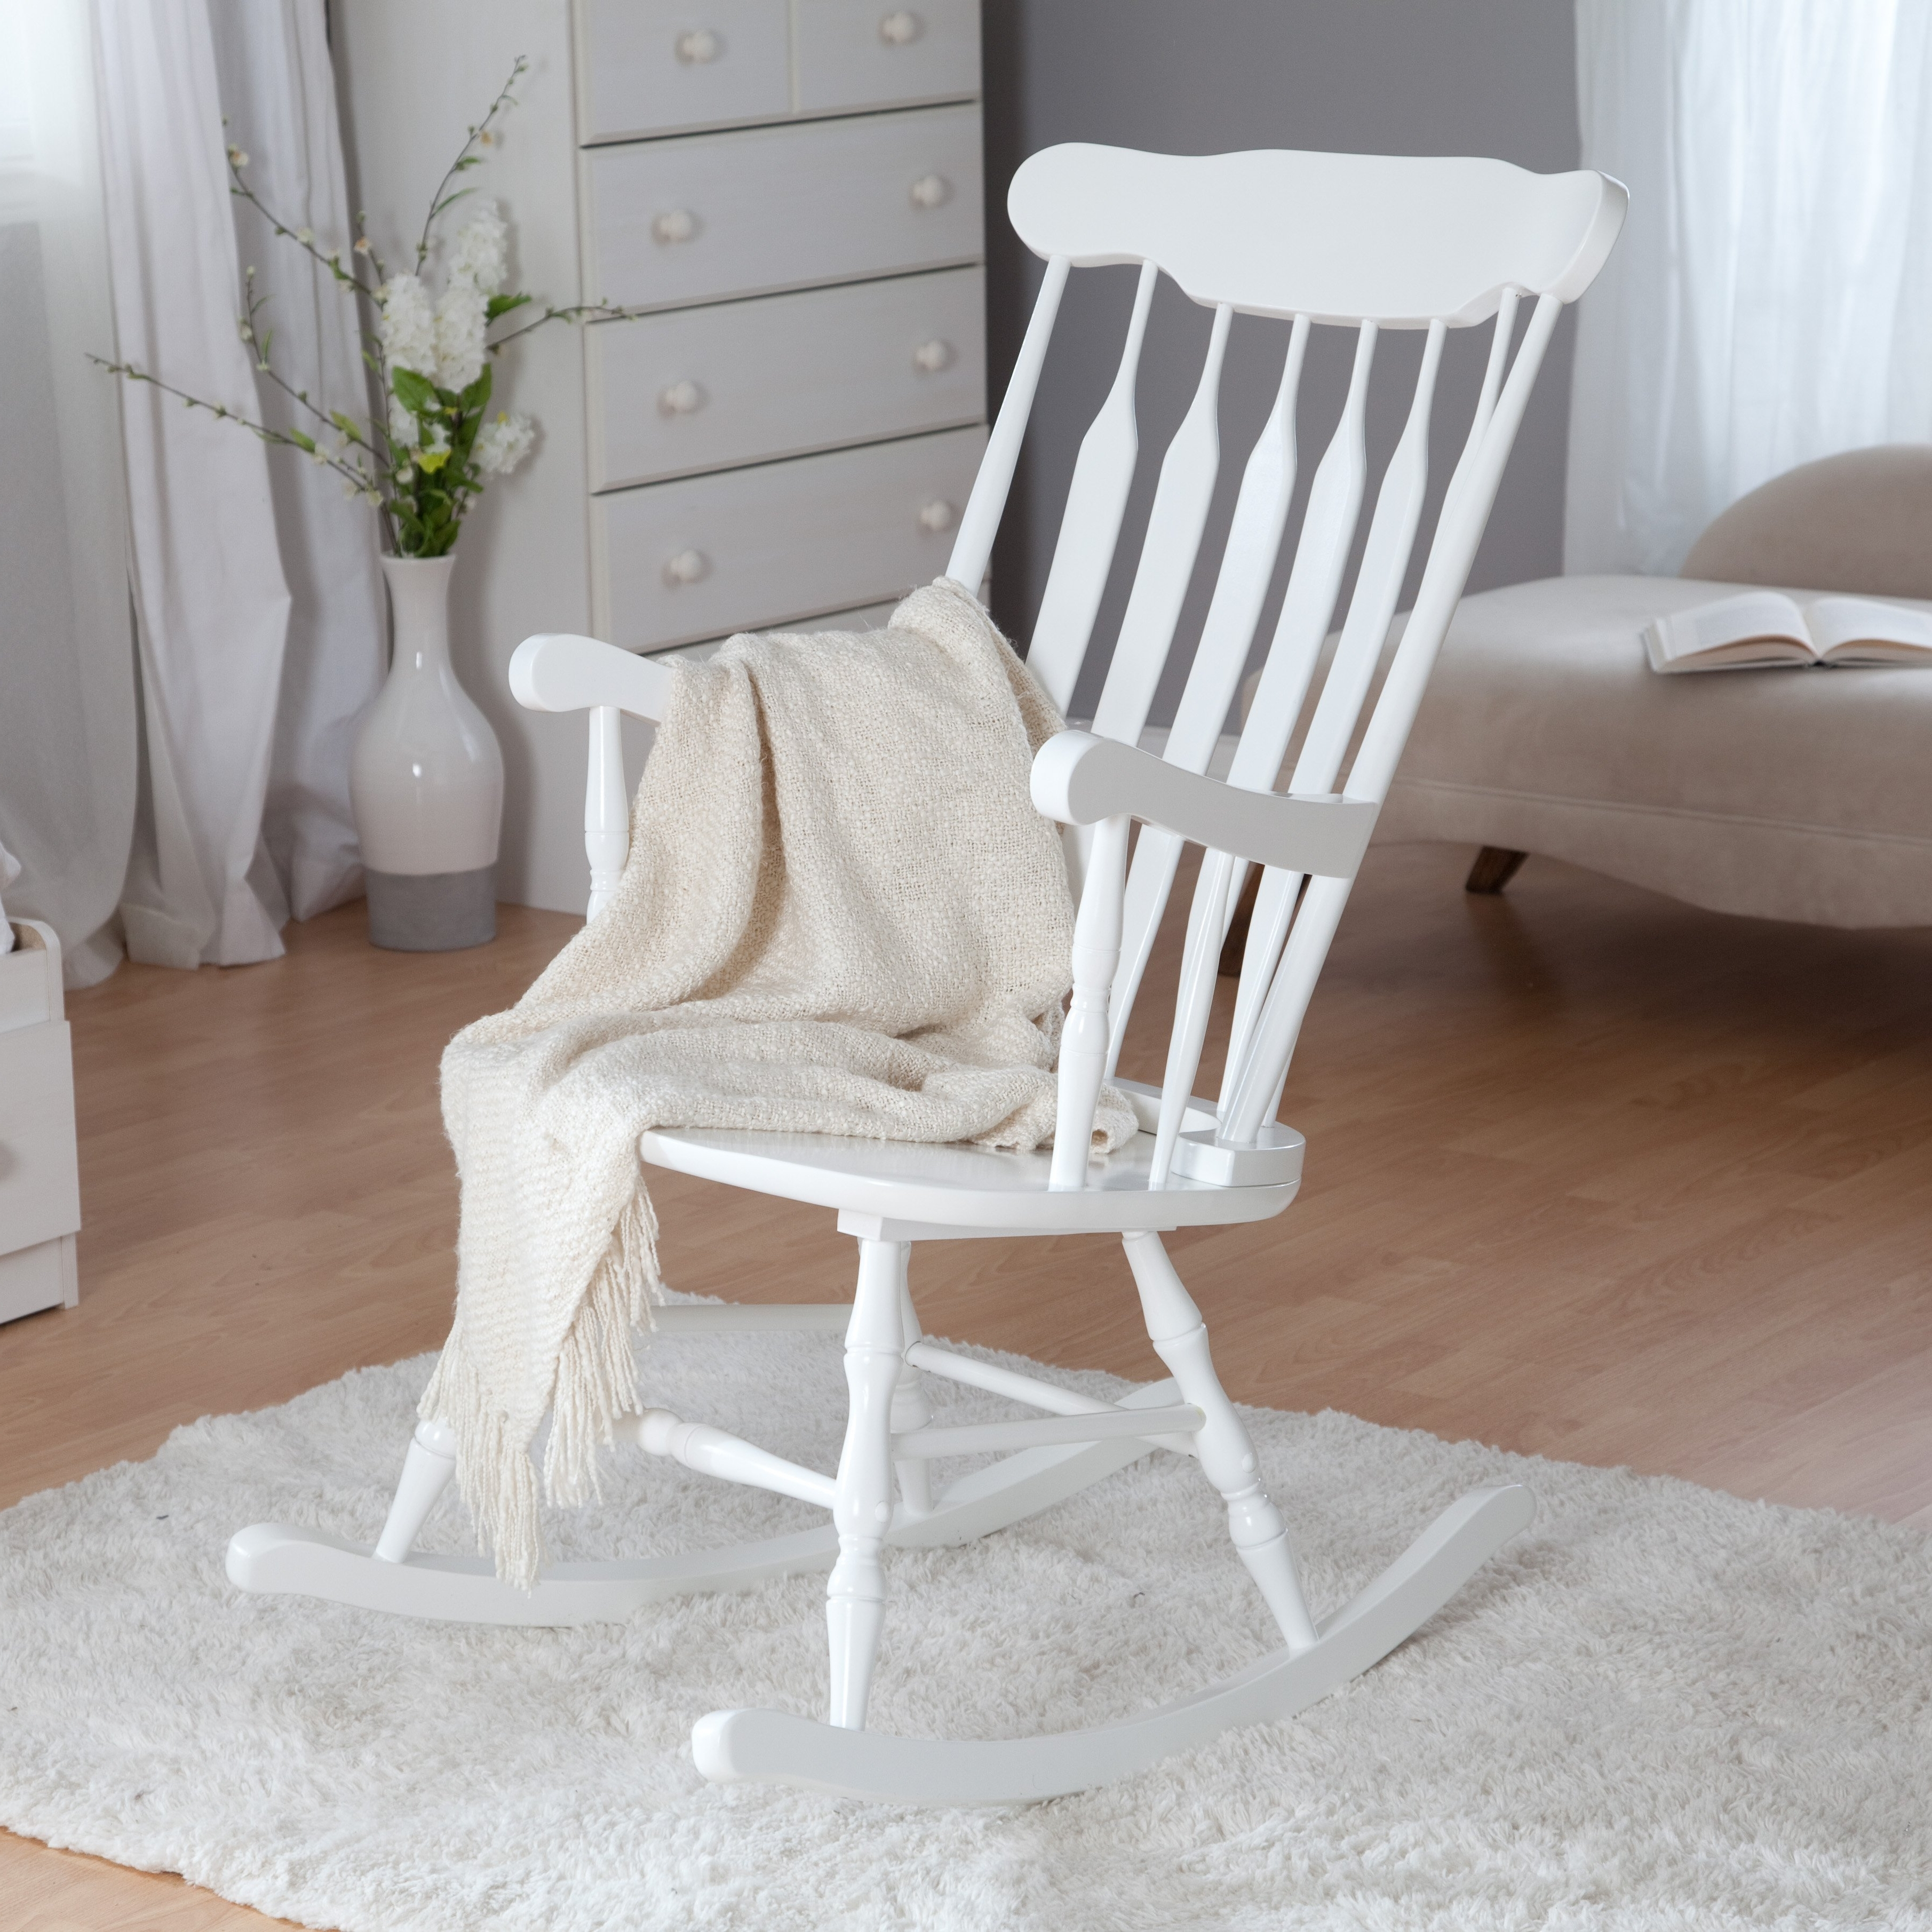 Famous Perfect Nursery Rocking Chair Cushions With Resolution Lazy Boy Type Inside White Wicker Rocking Chair For Nursery (View 5 of 20)